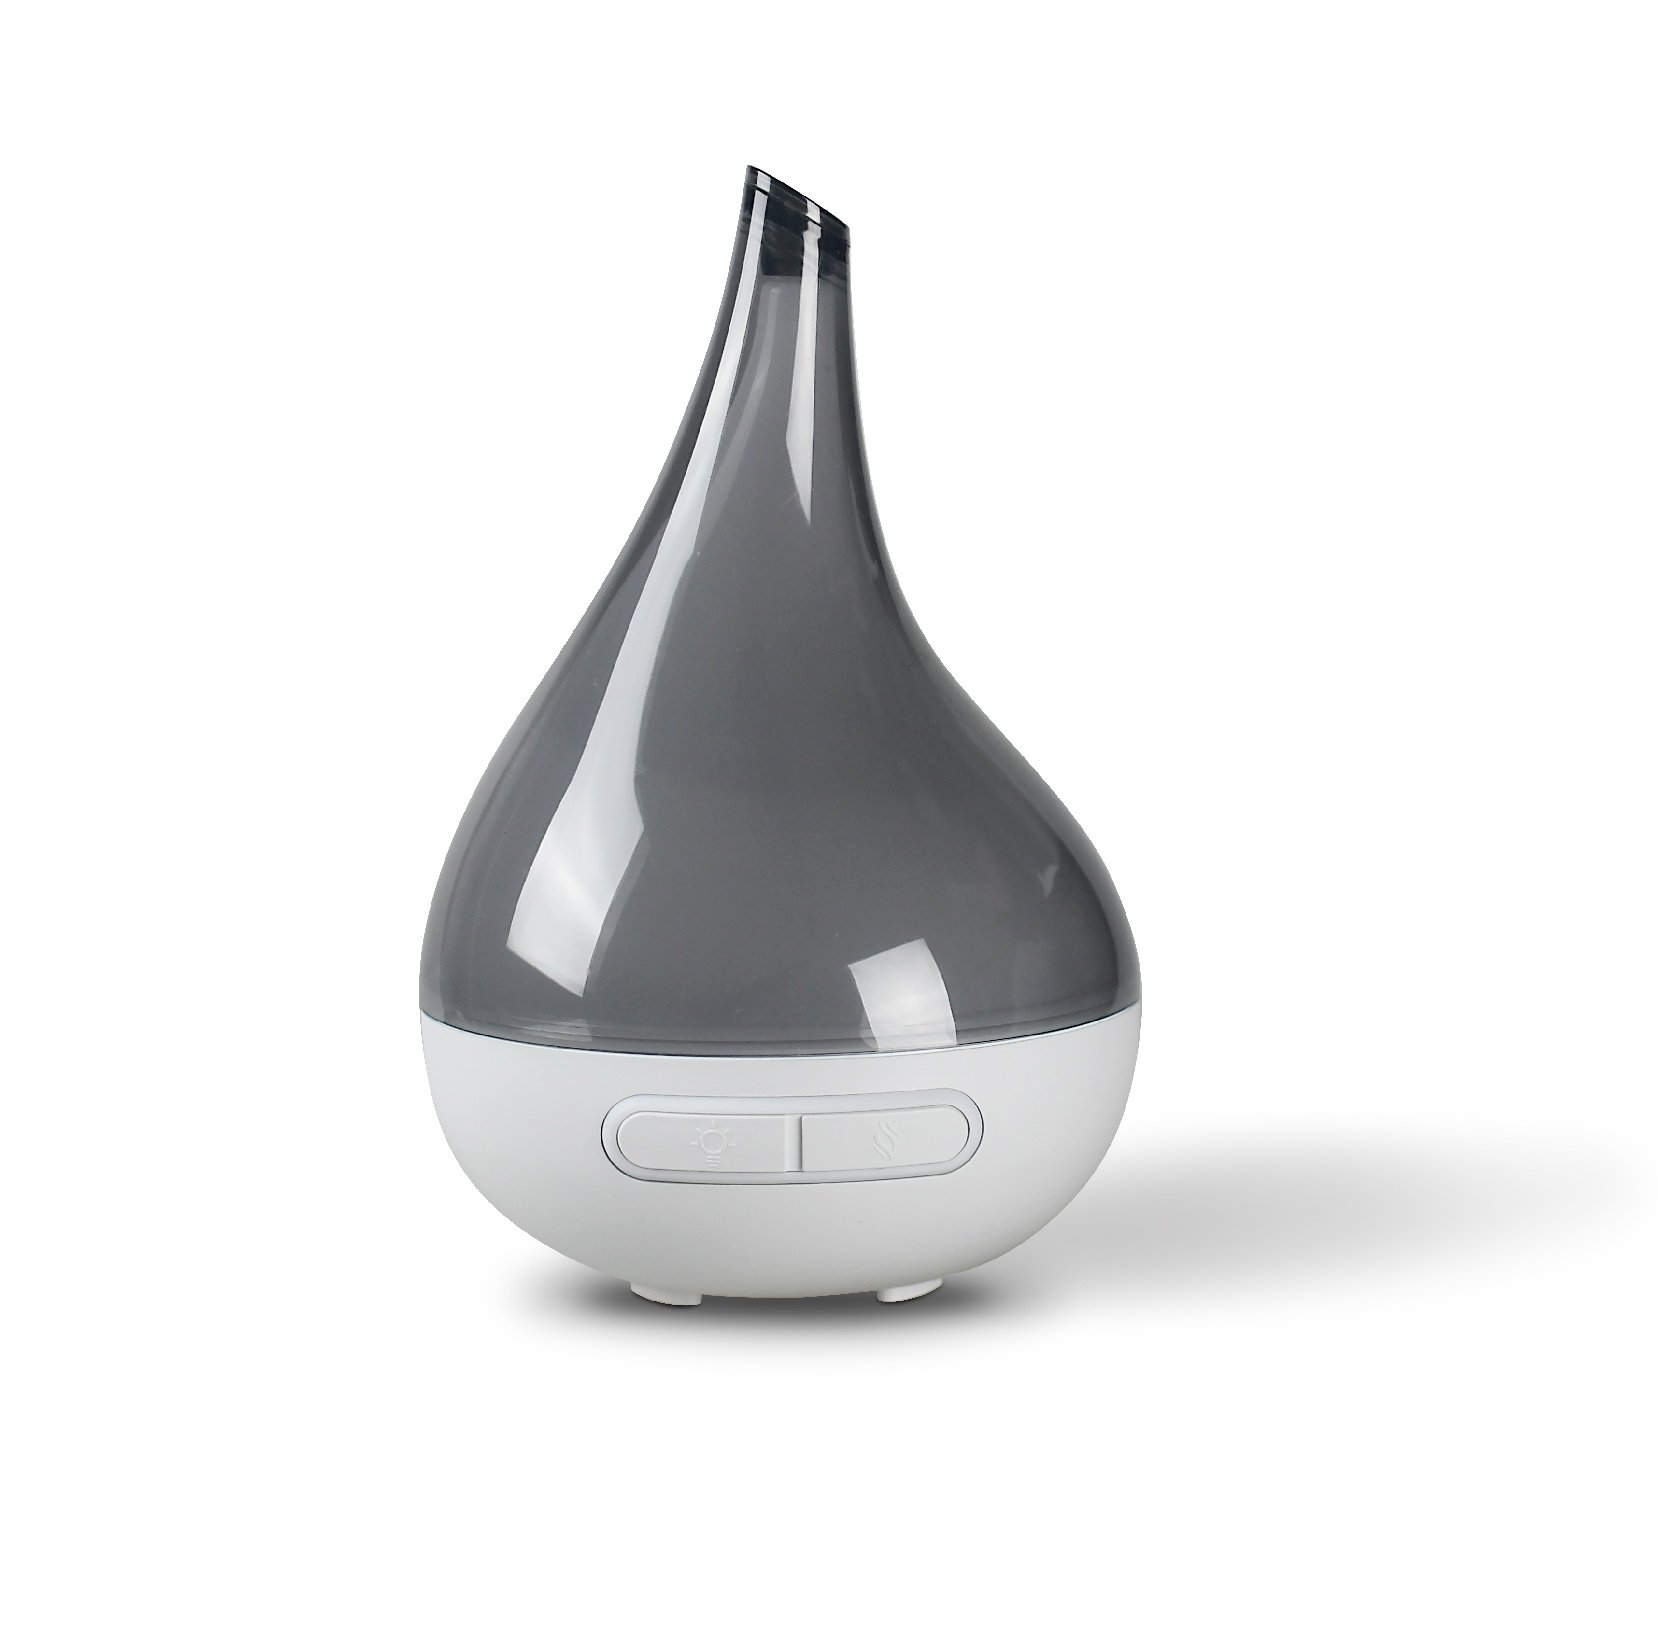 Ultrasonic Oil Diffuser ~ A review of the top most popular ultrasonic essential